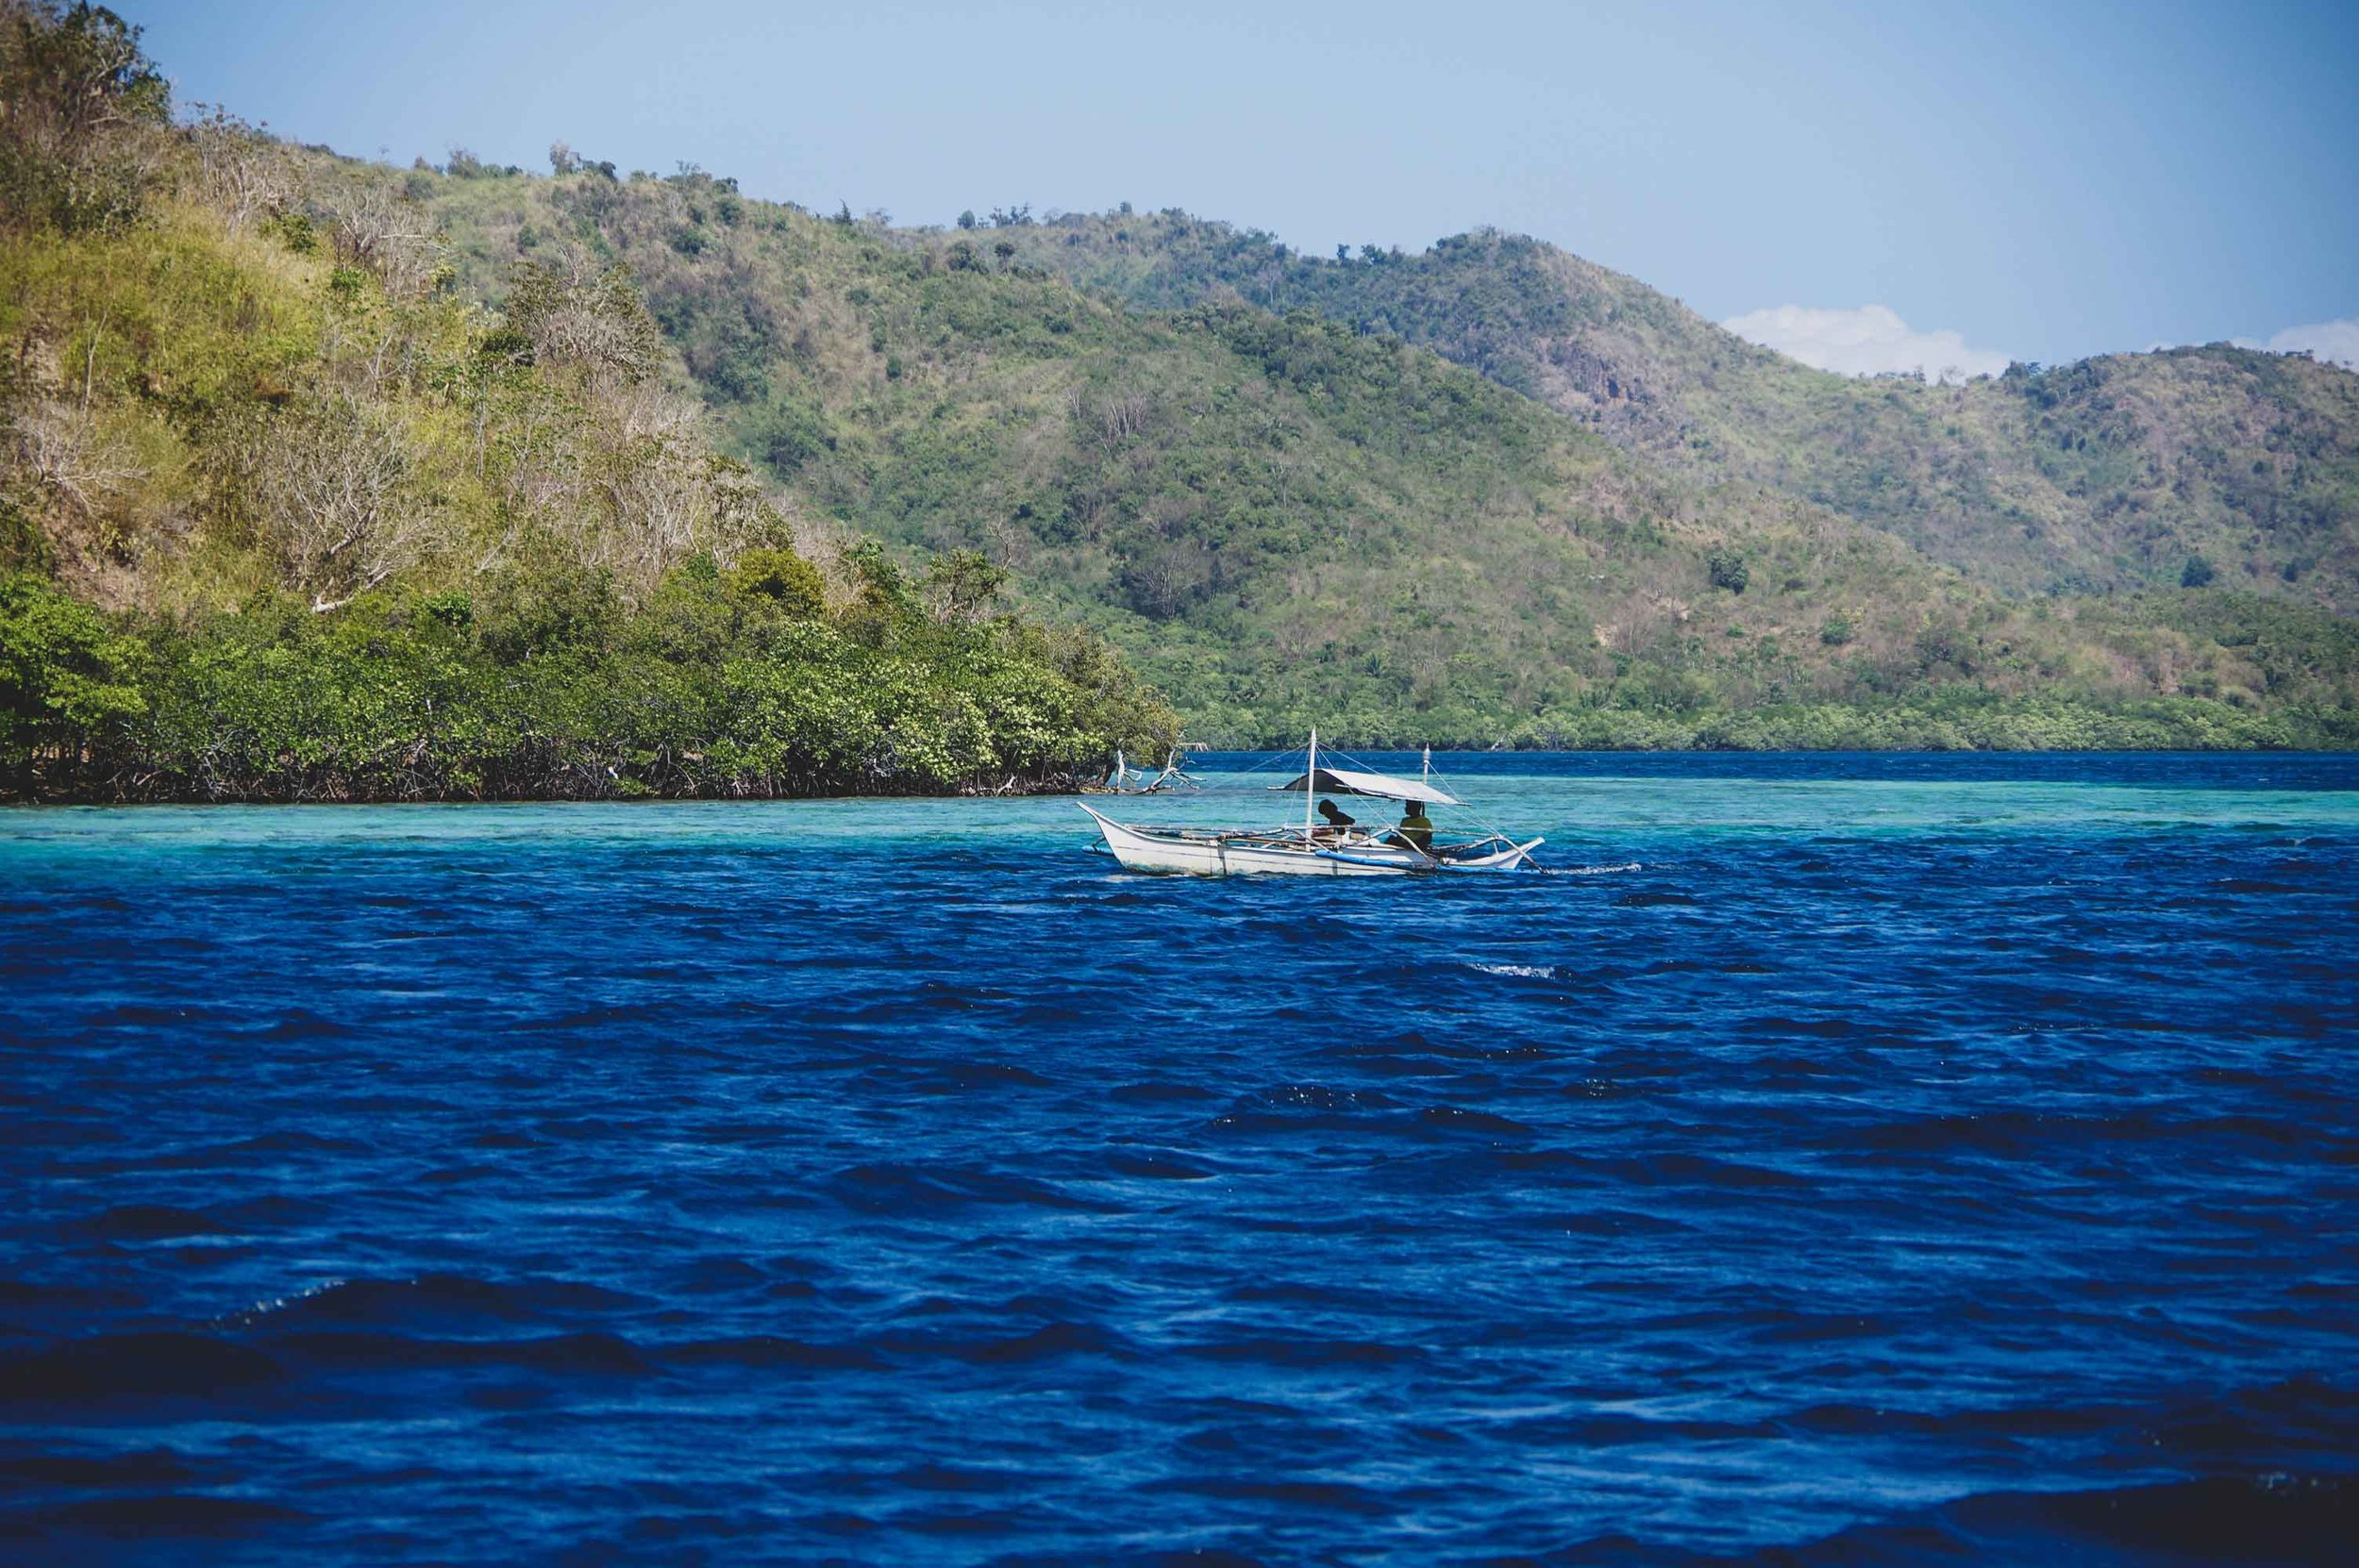 A small fishing boat used by the Tagbanuas of Coron.